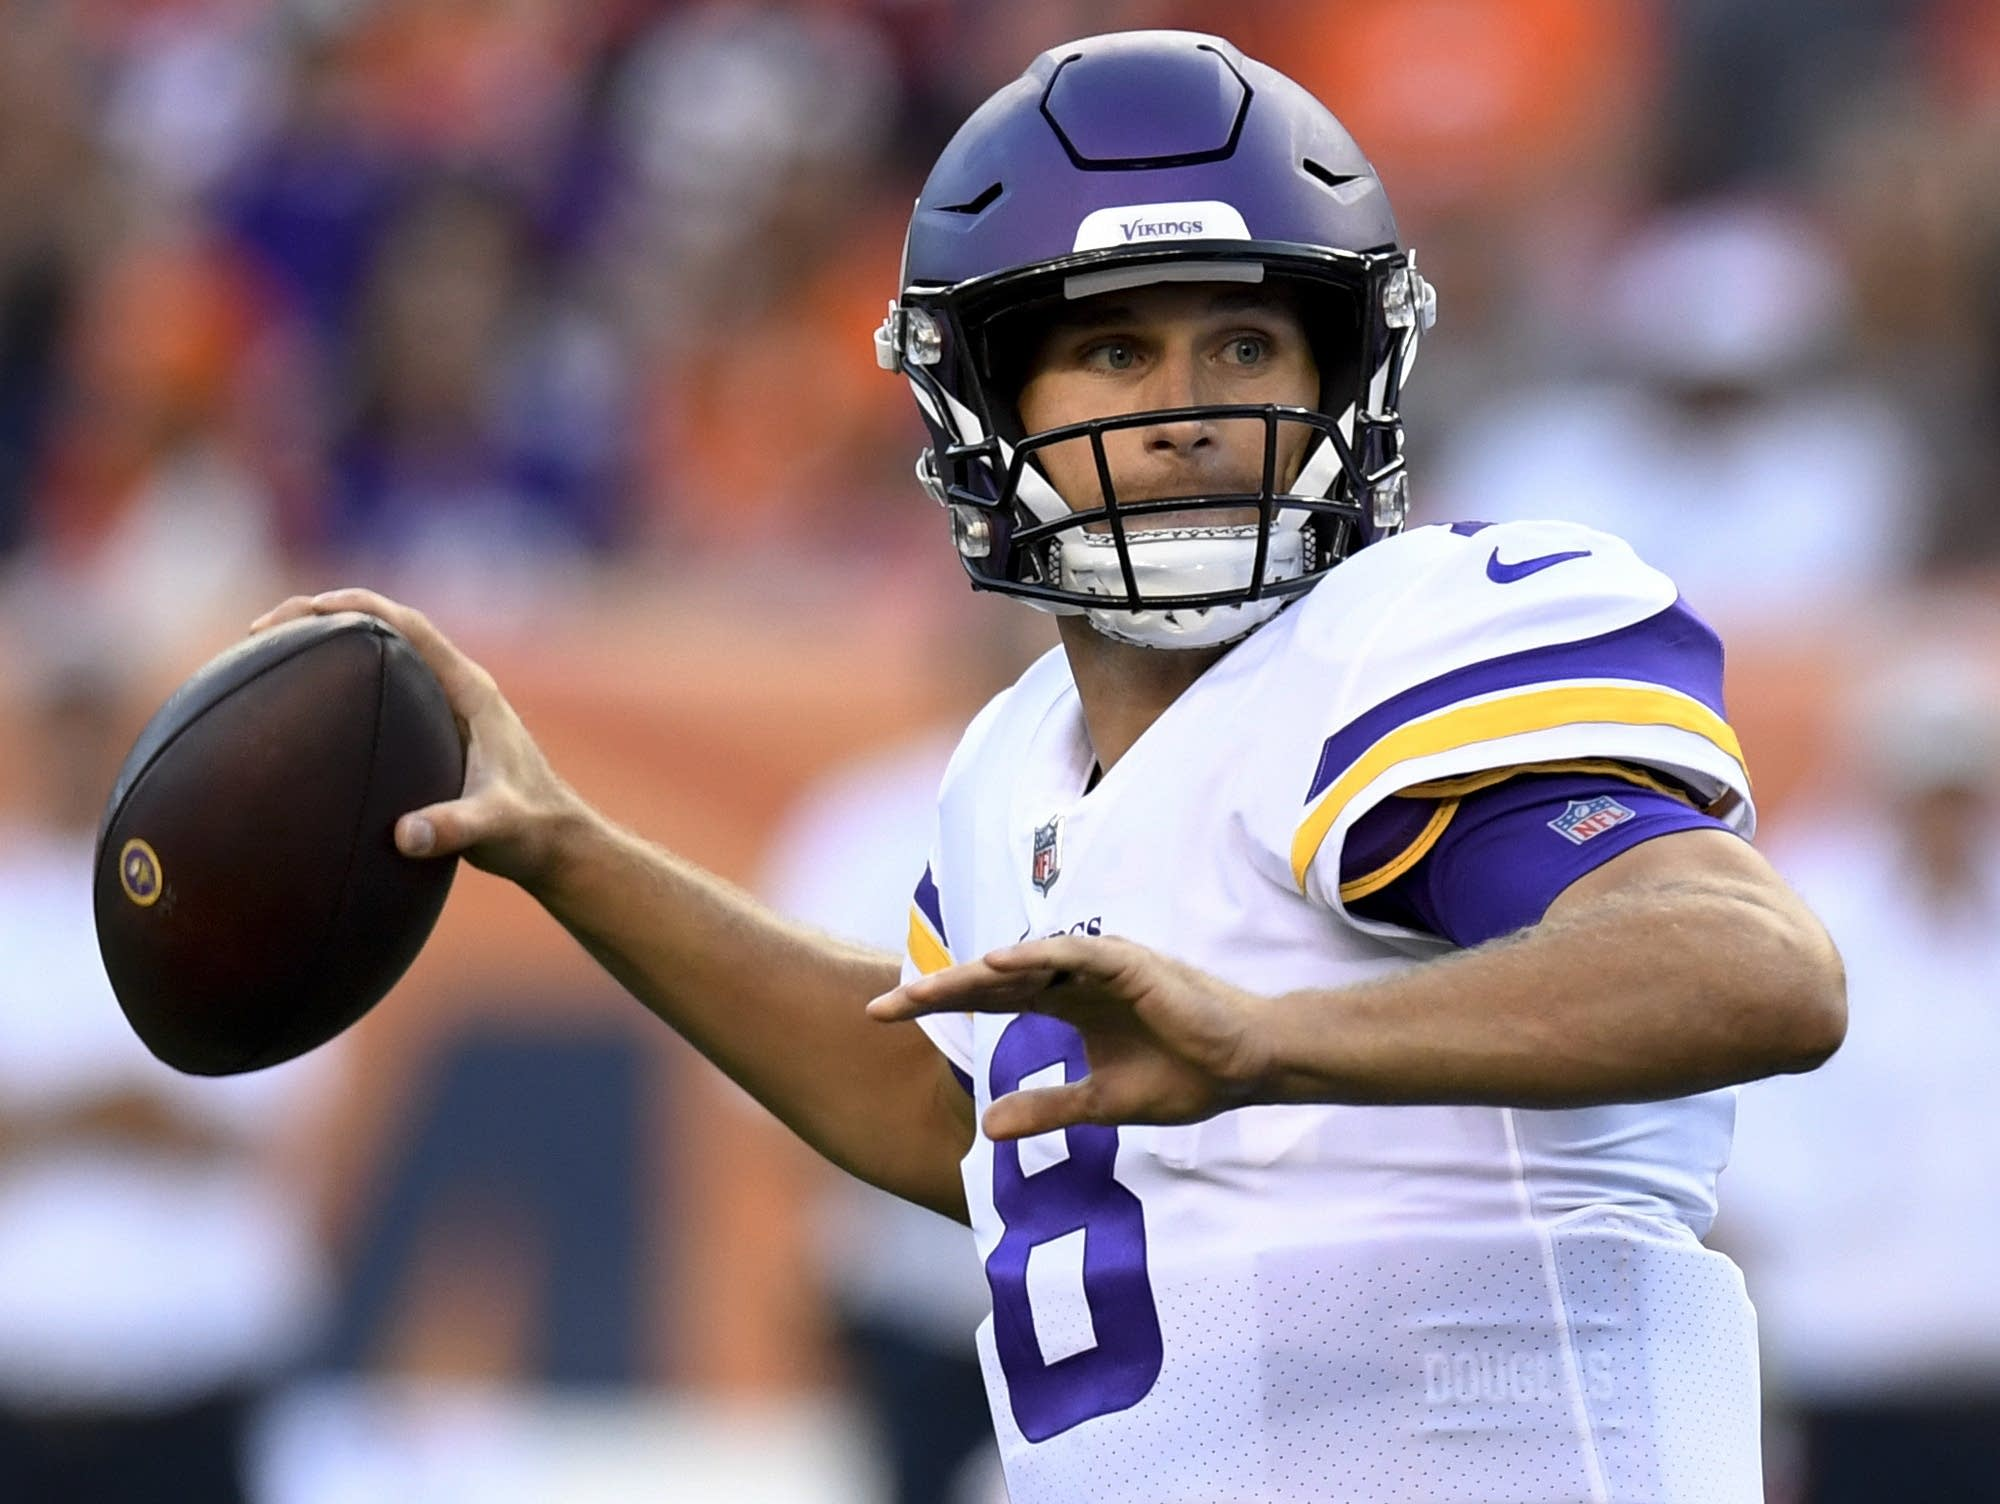 During the off-season, a lot of attention has been paid to the state of the Minnesota Vikings offensive line. As injuries took their toll towards the end of last season, the Vikes were forced into.